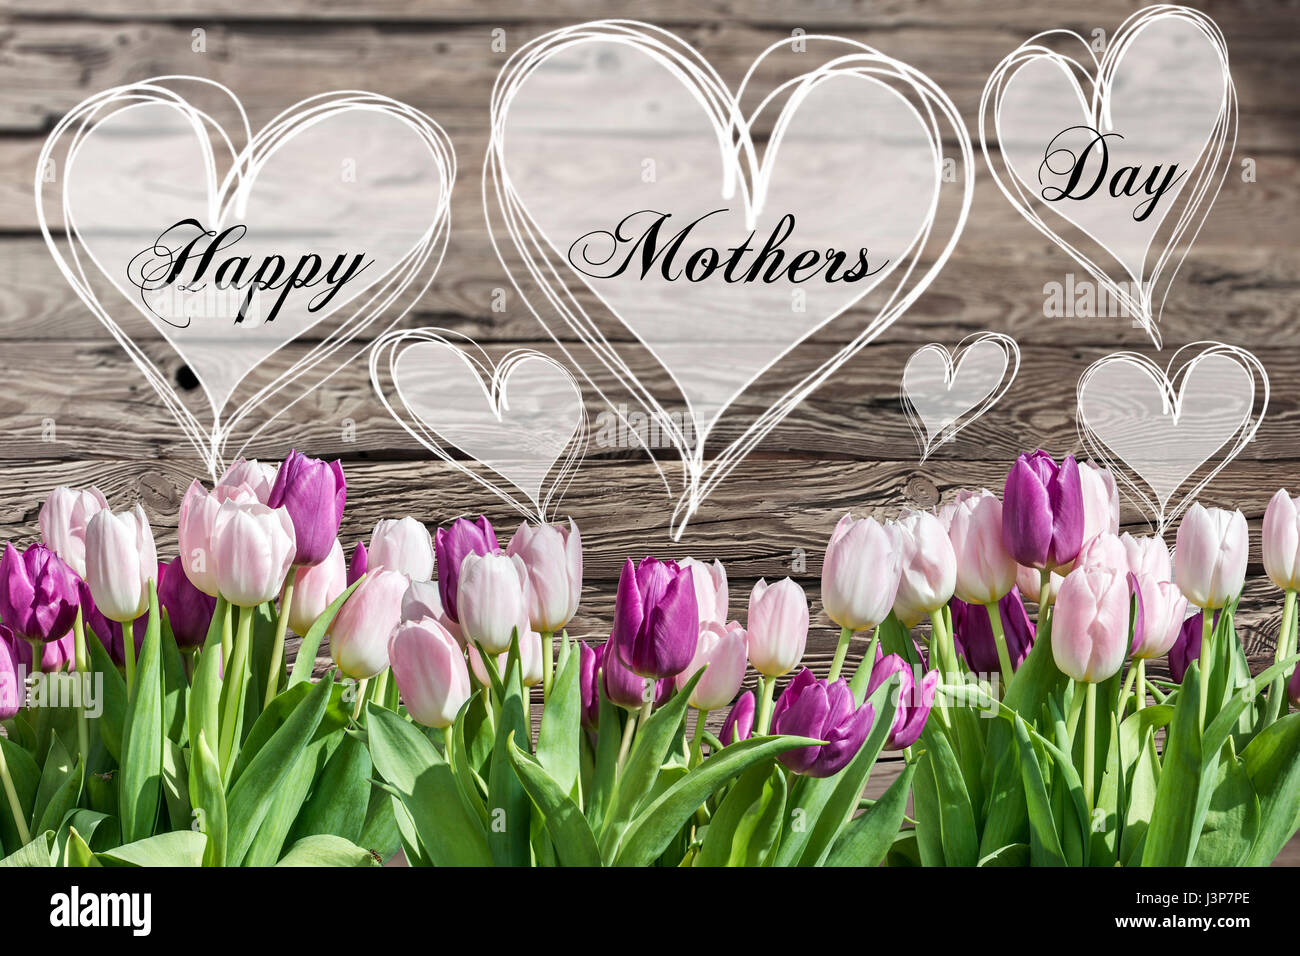 Happy mothers day text heart with pink and white tulips on rustic happy mothers day text heart with pink and white tulips on rustic wooden background greeting card spring flowers kristyandbryce Choice Image